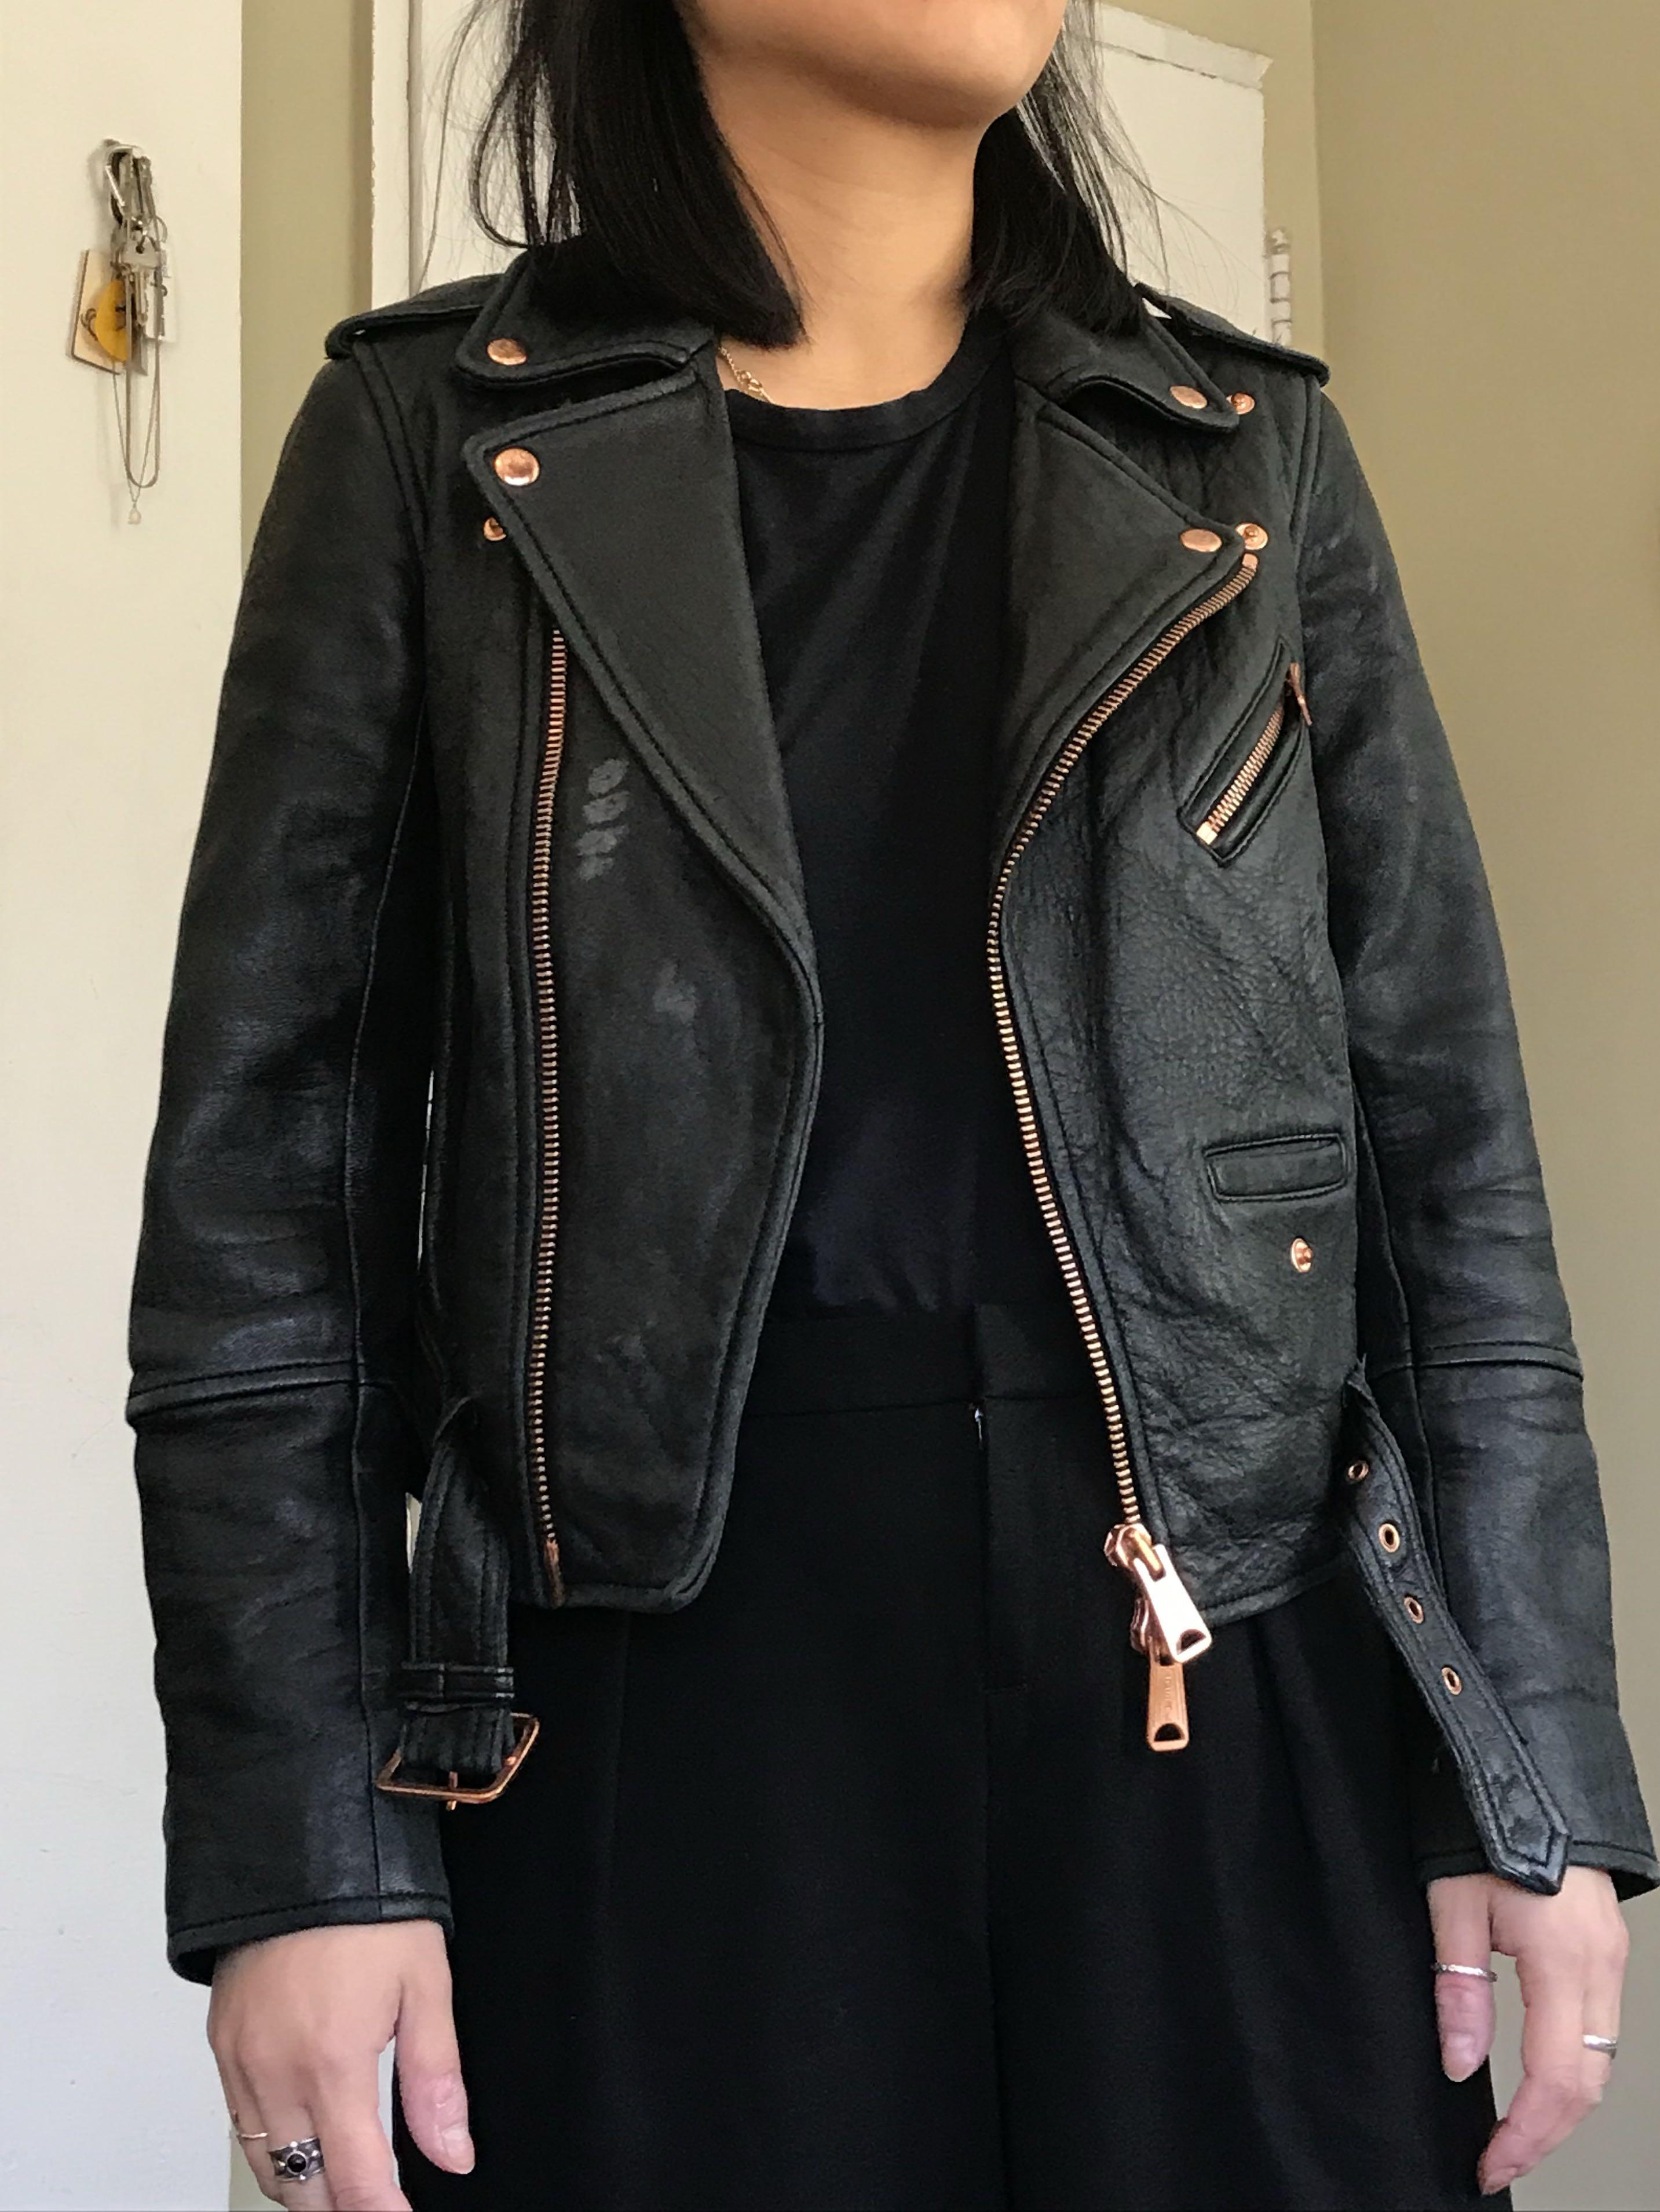 Club Monaco Leather Jacket with Rose Gold, Size XS